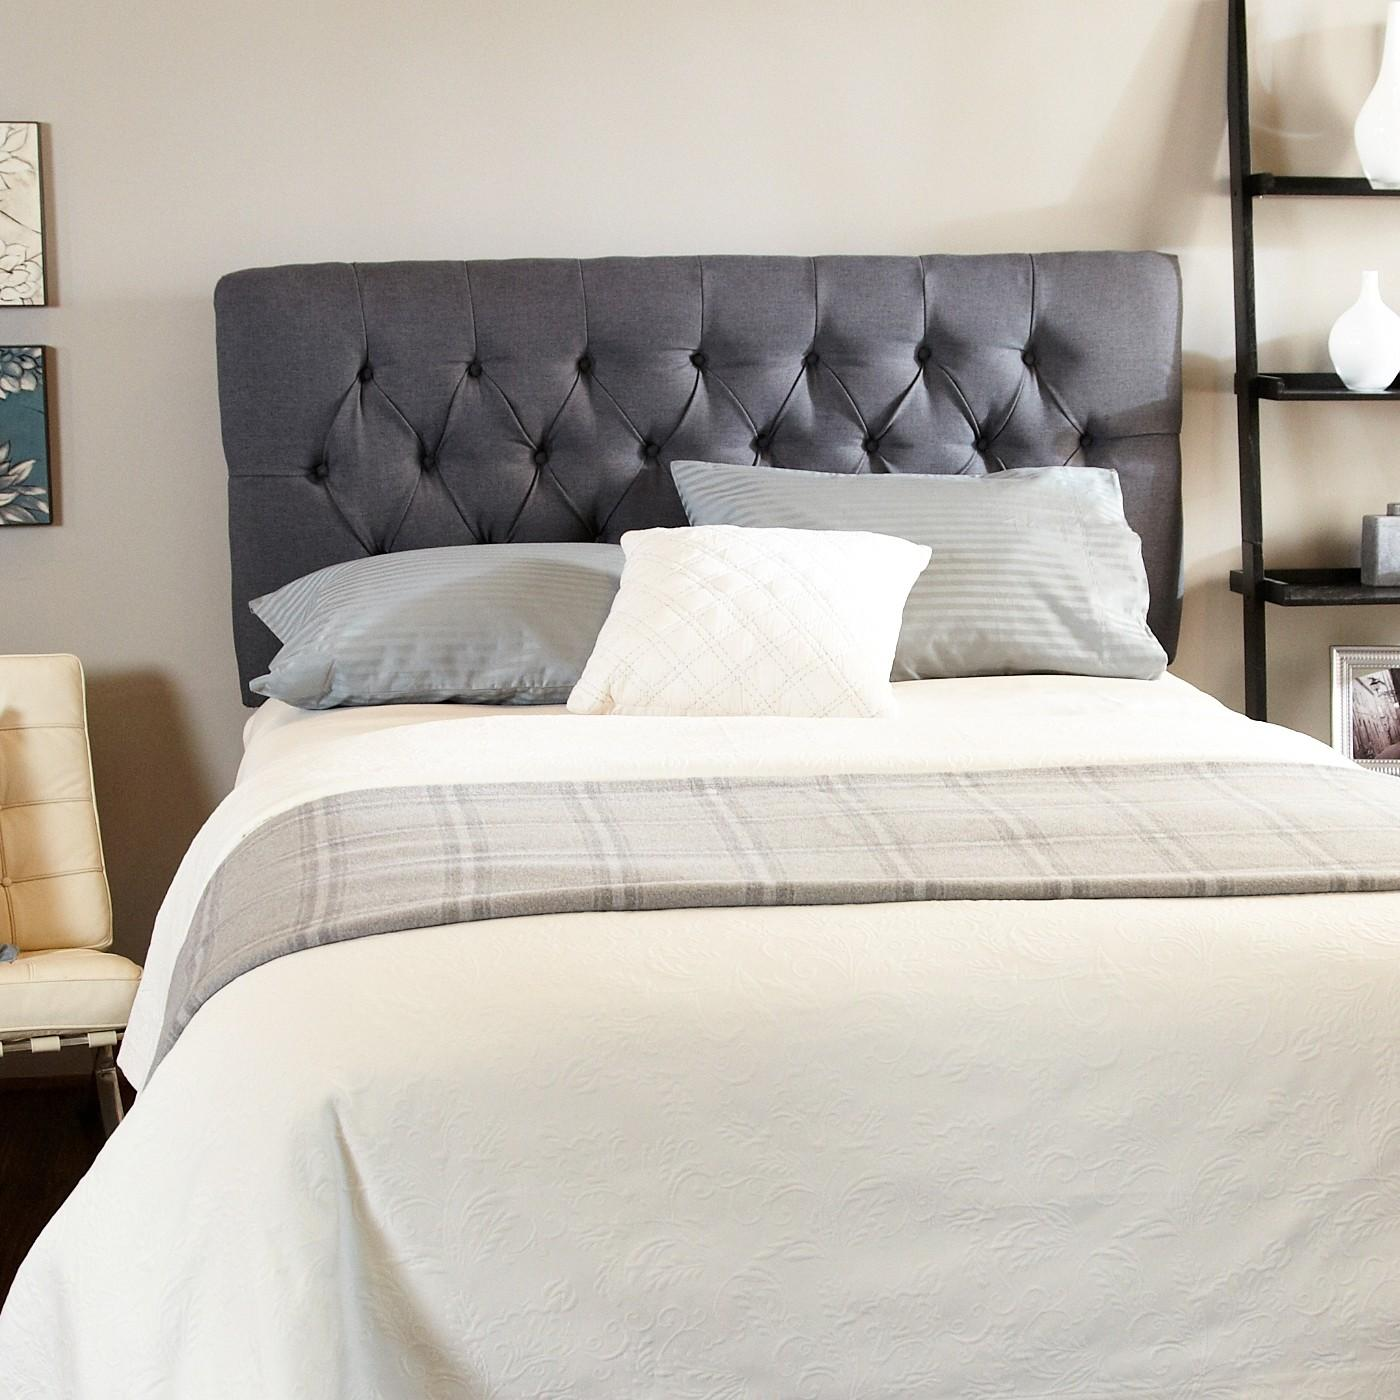 Interior Large Grey Leather Headboard Connected